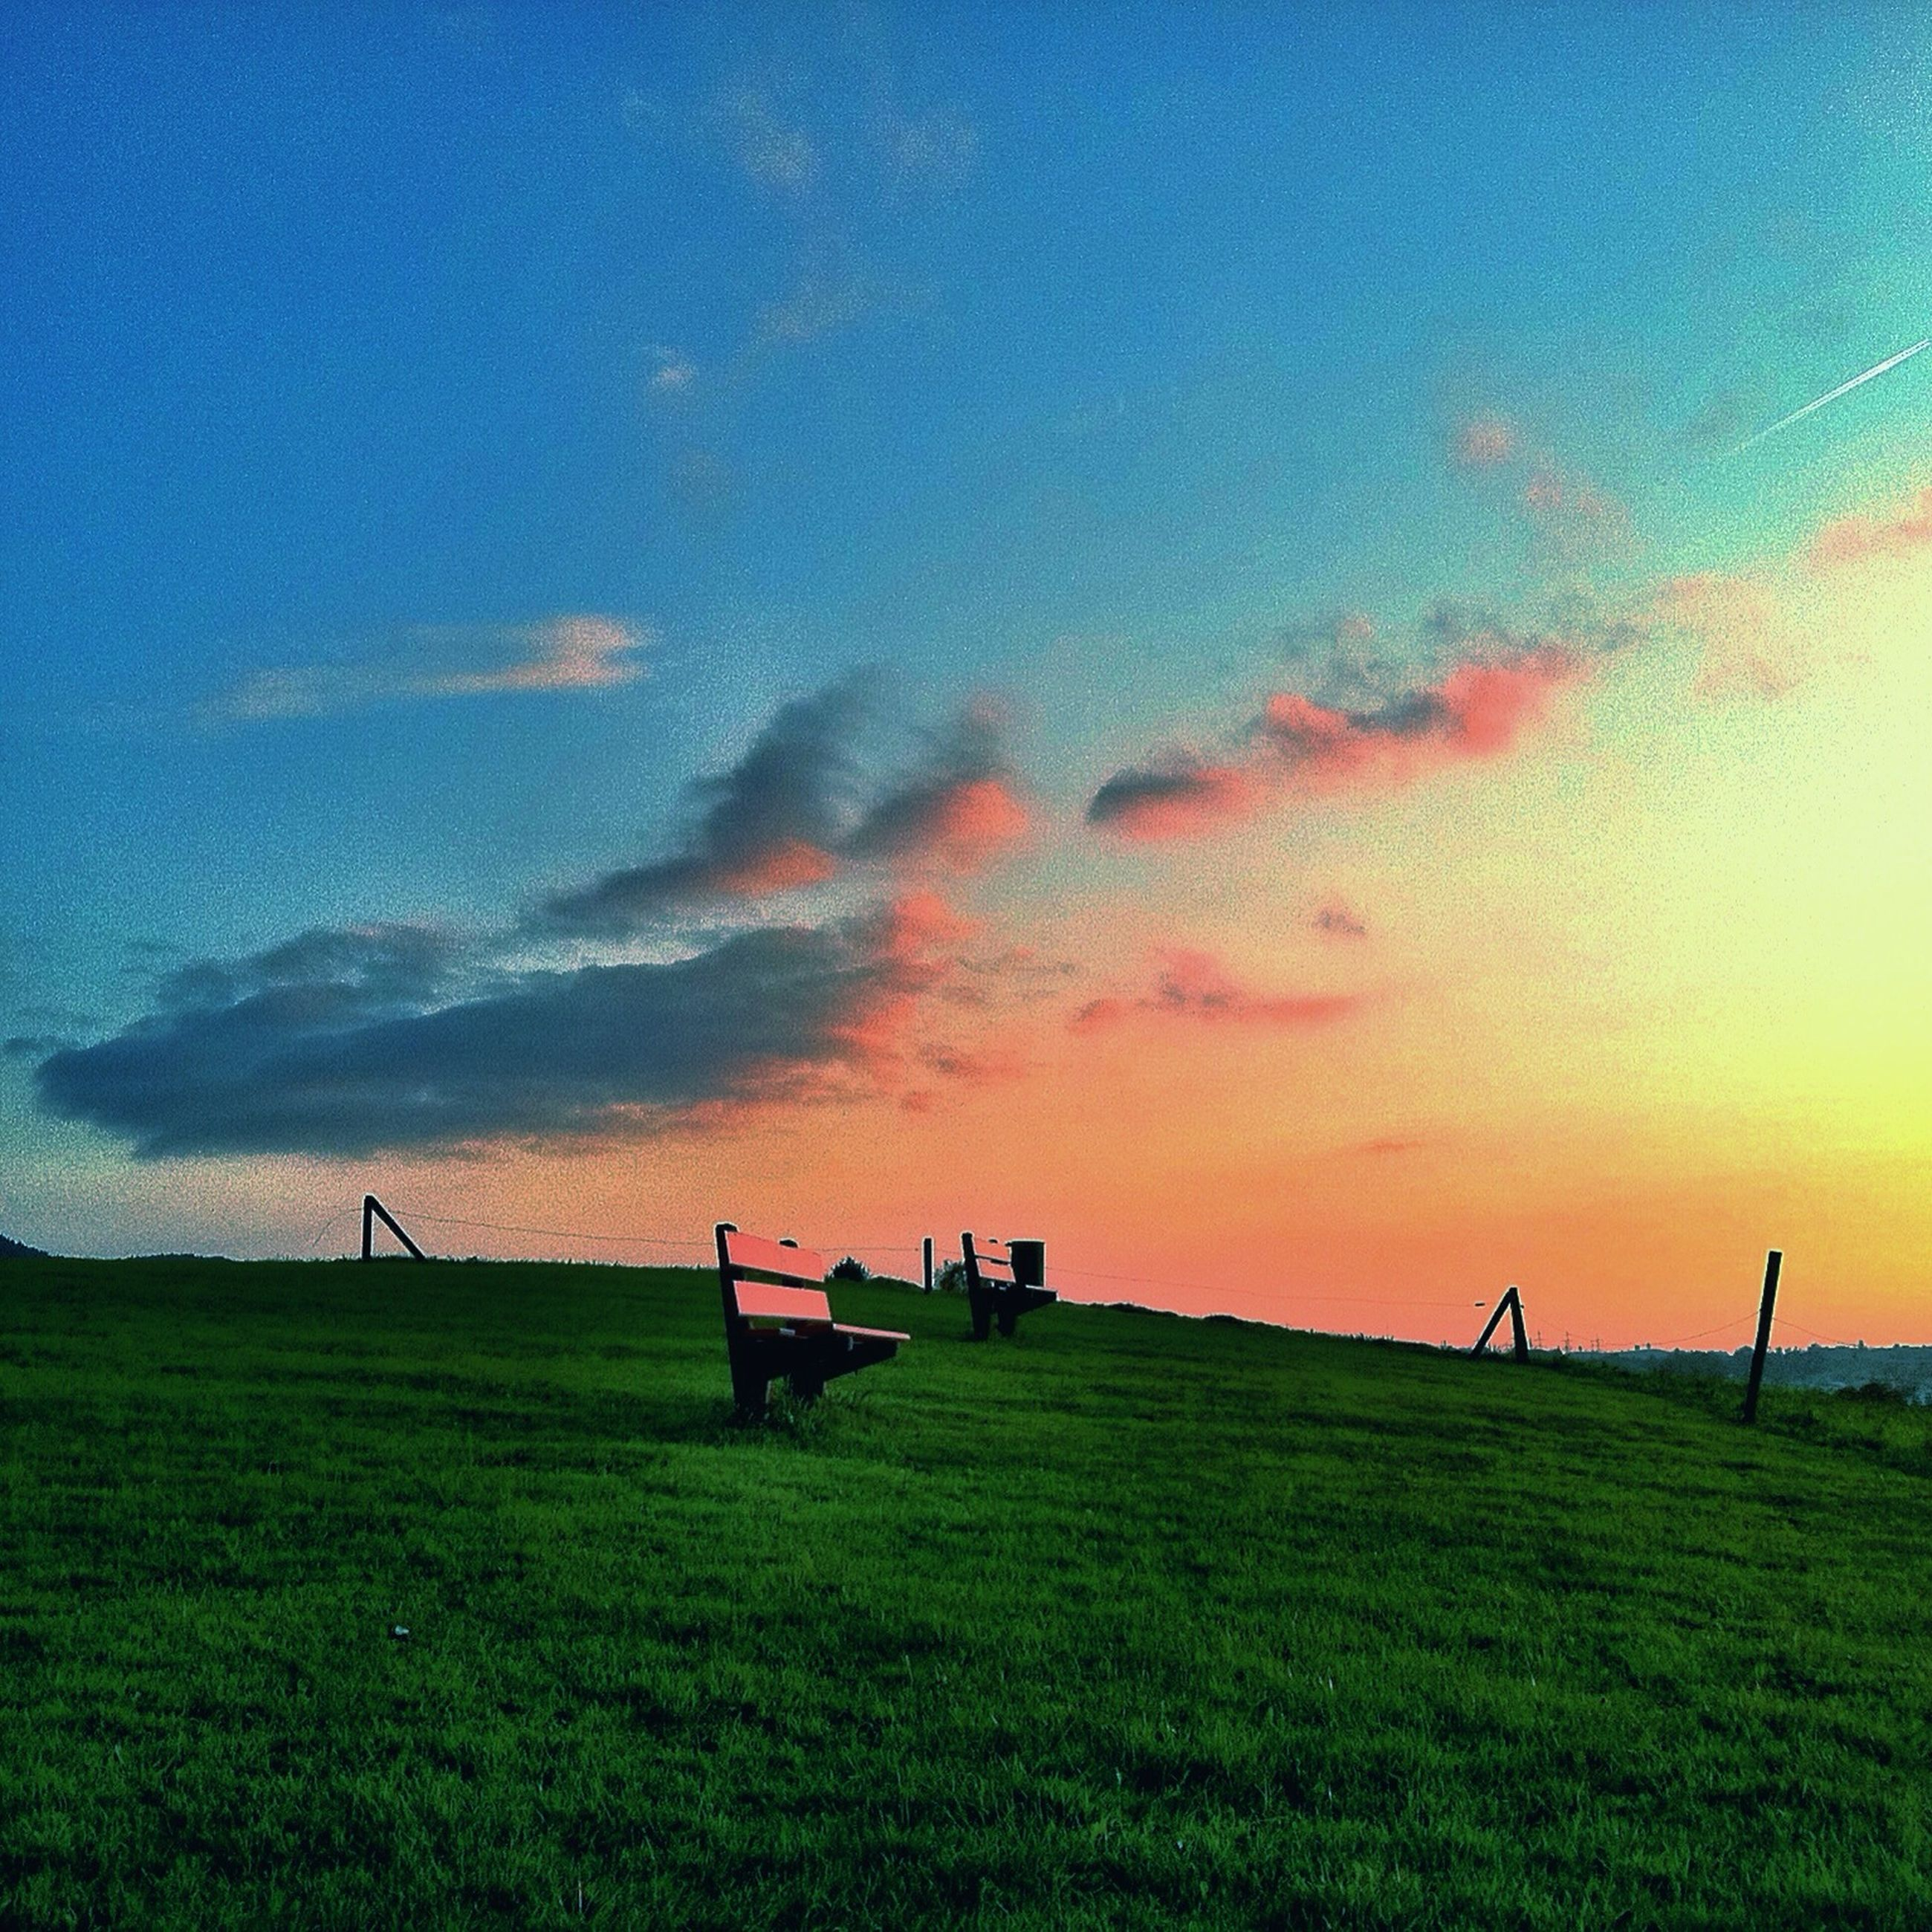 grass, sky, field, sunset, landscape, tranquility, tranquil scene, scenics, beauty in nature, nature, grassy, cloud - sky, green color, orange color, idyllic, outdoors, non-urban scene, cloud, tree, no people